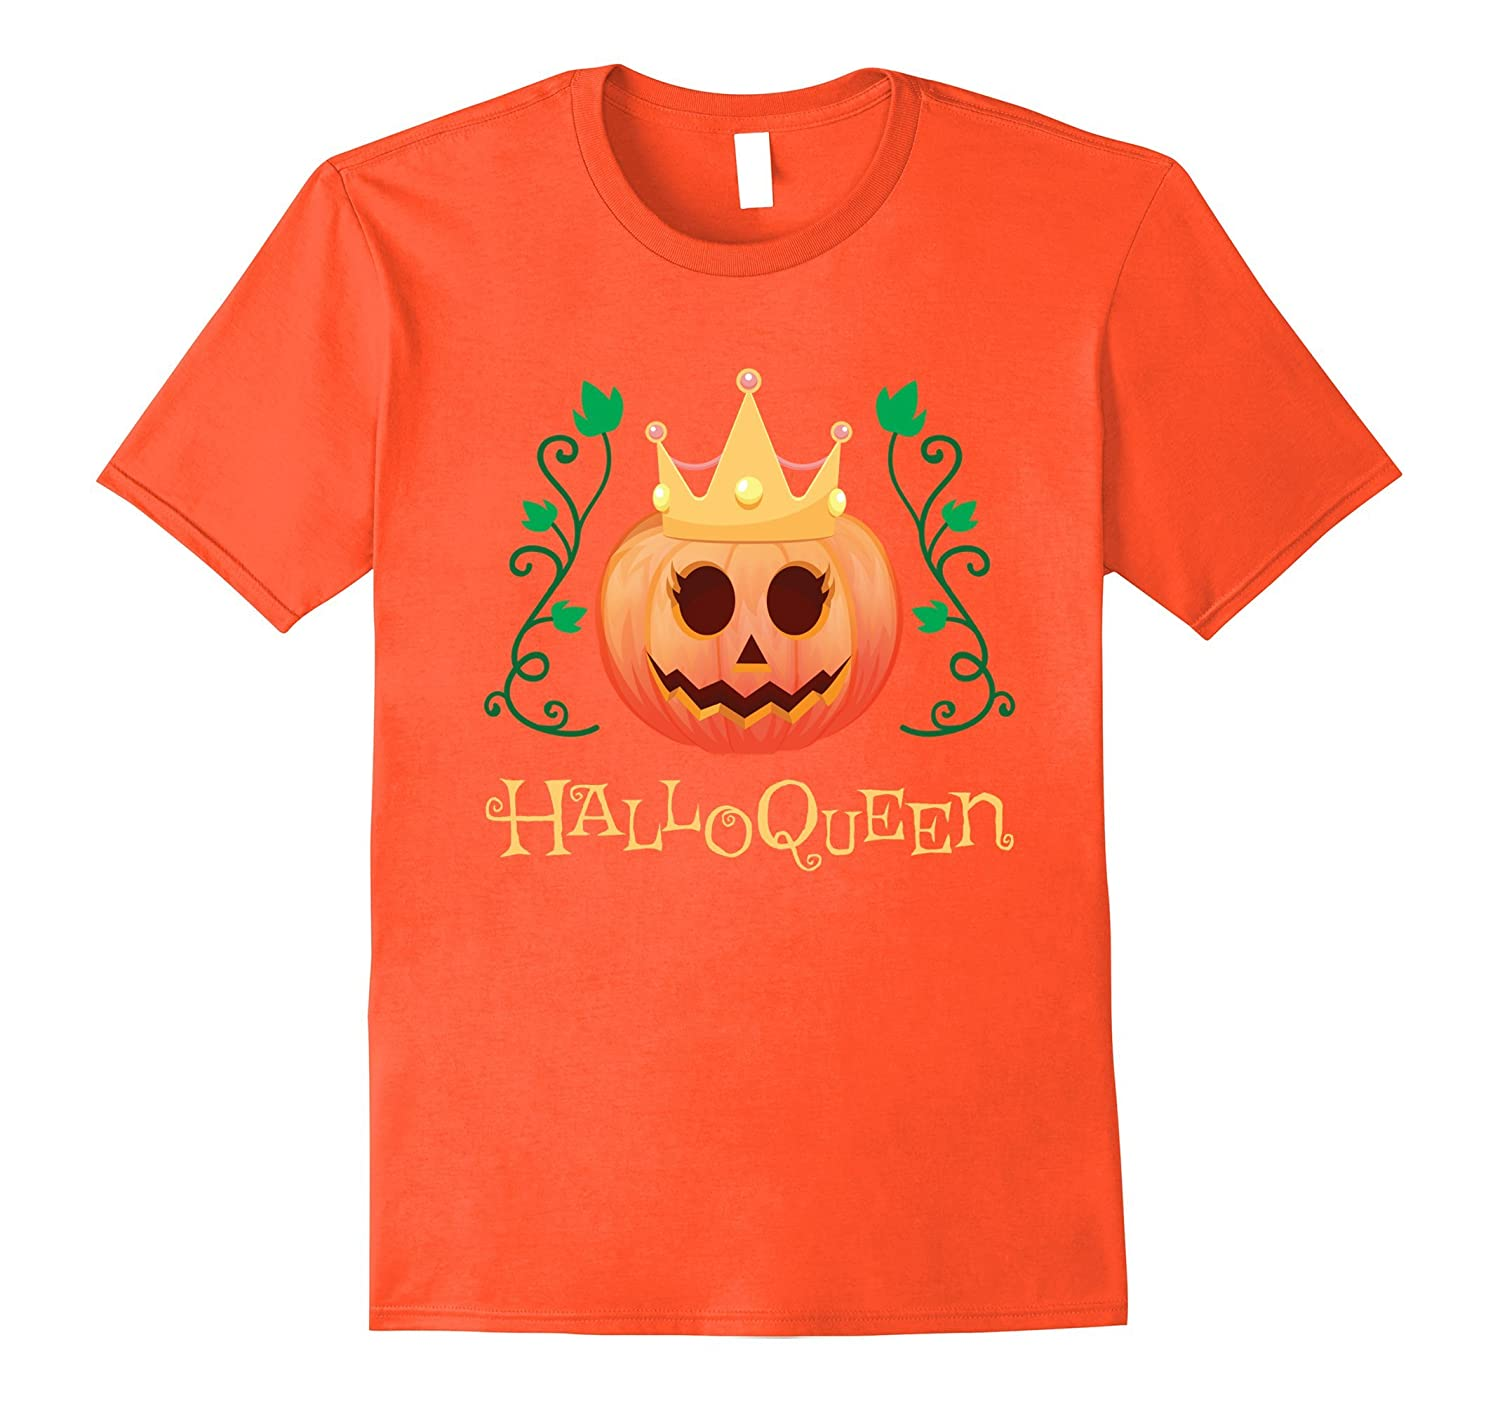 Great Halloween Hallowqueen Shirt Men Women Gay Pride-CL